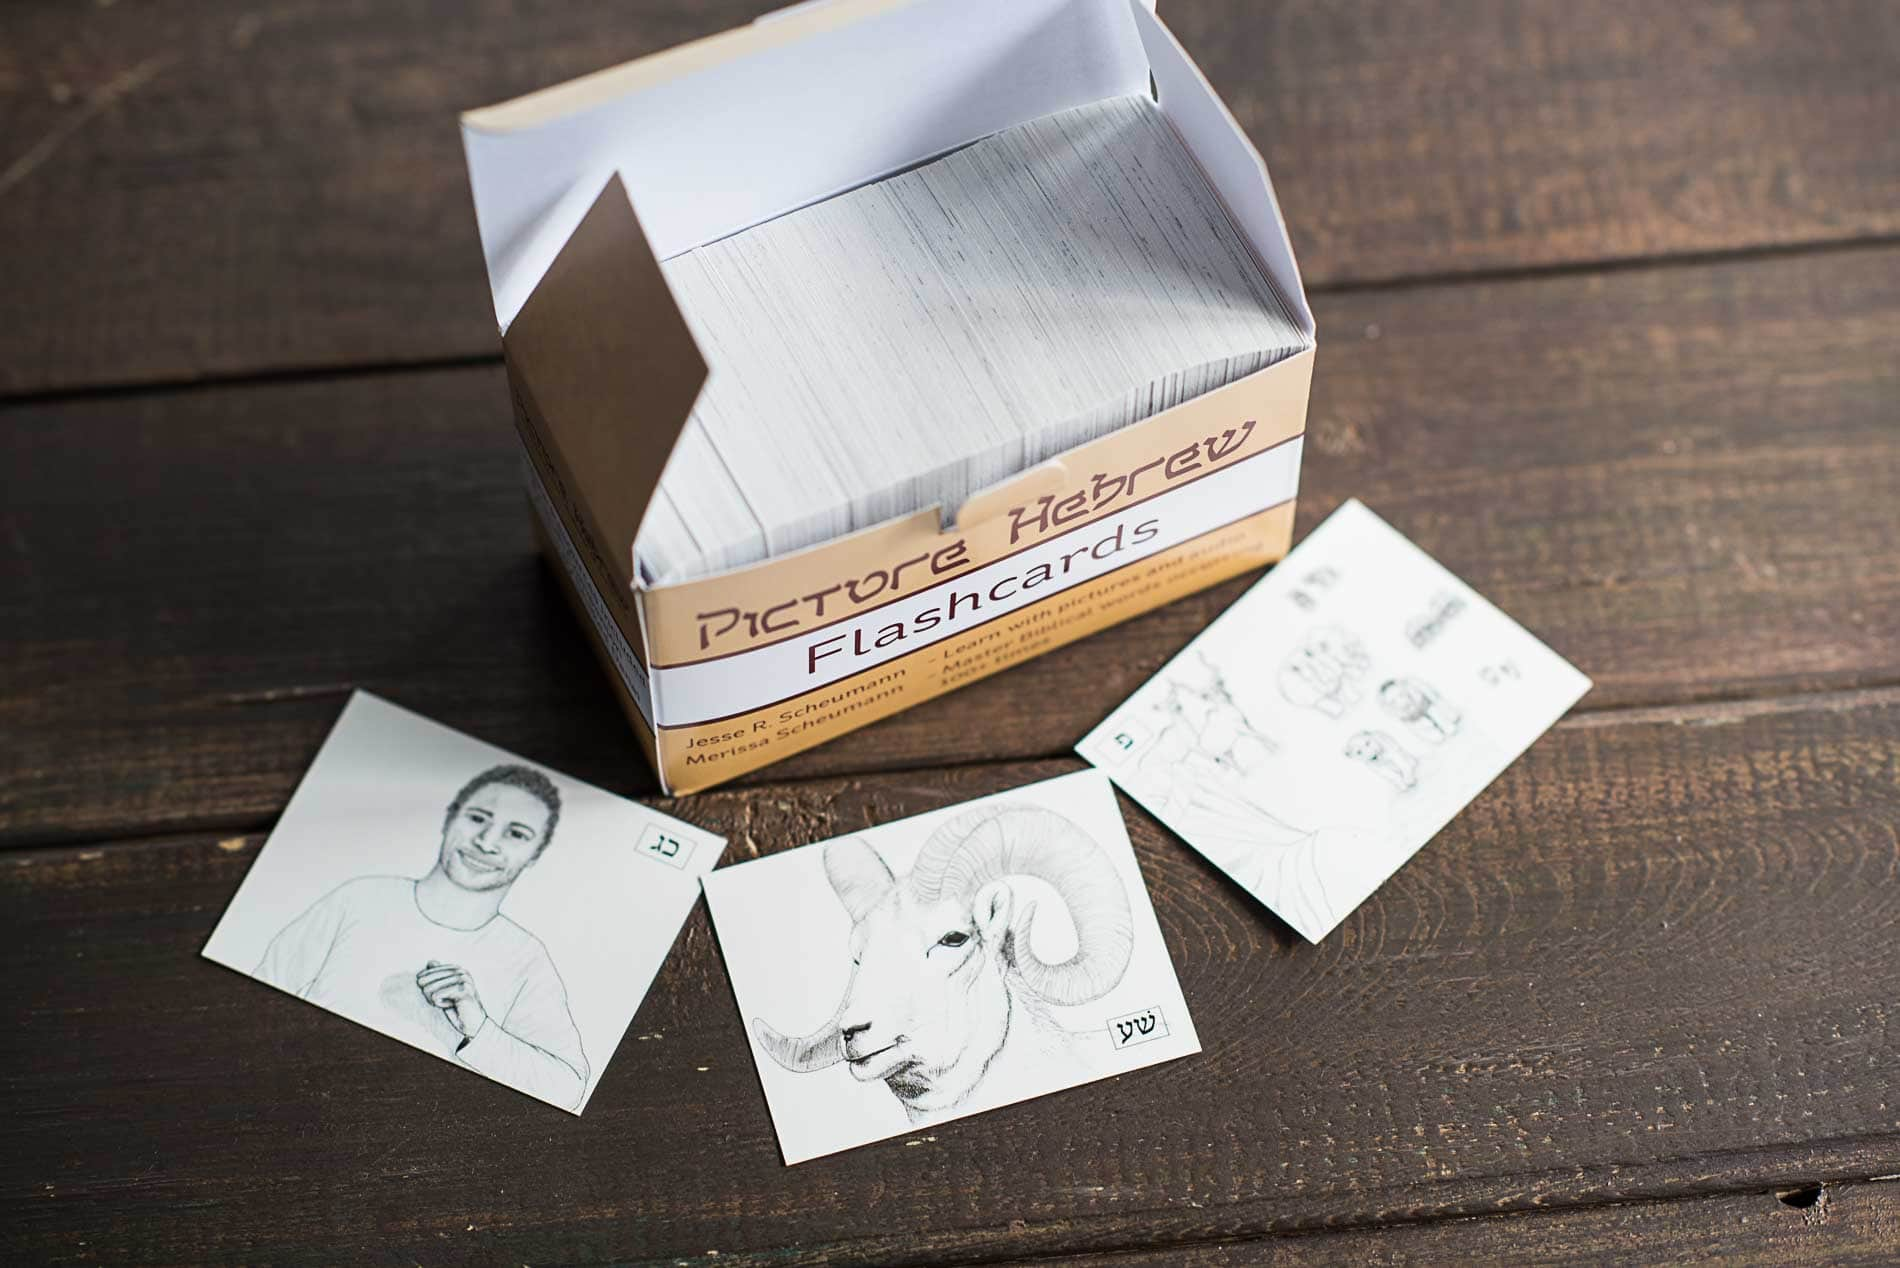 Picture Hebrew Flashcards Open Box with Illustrations on wooden table